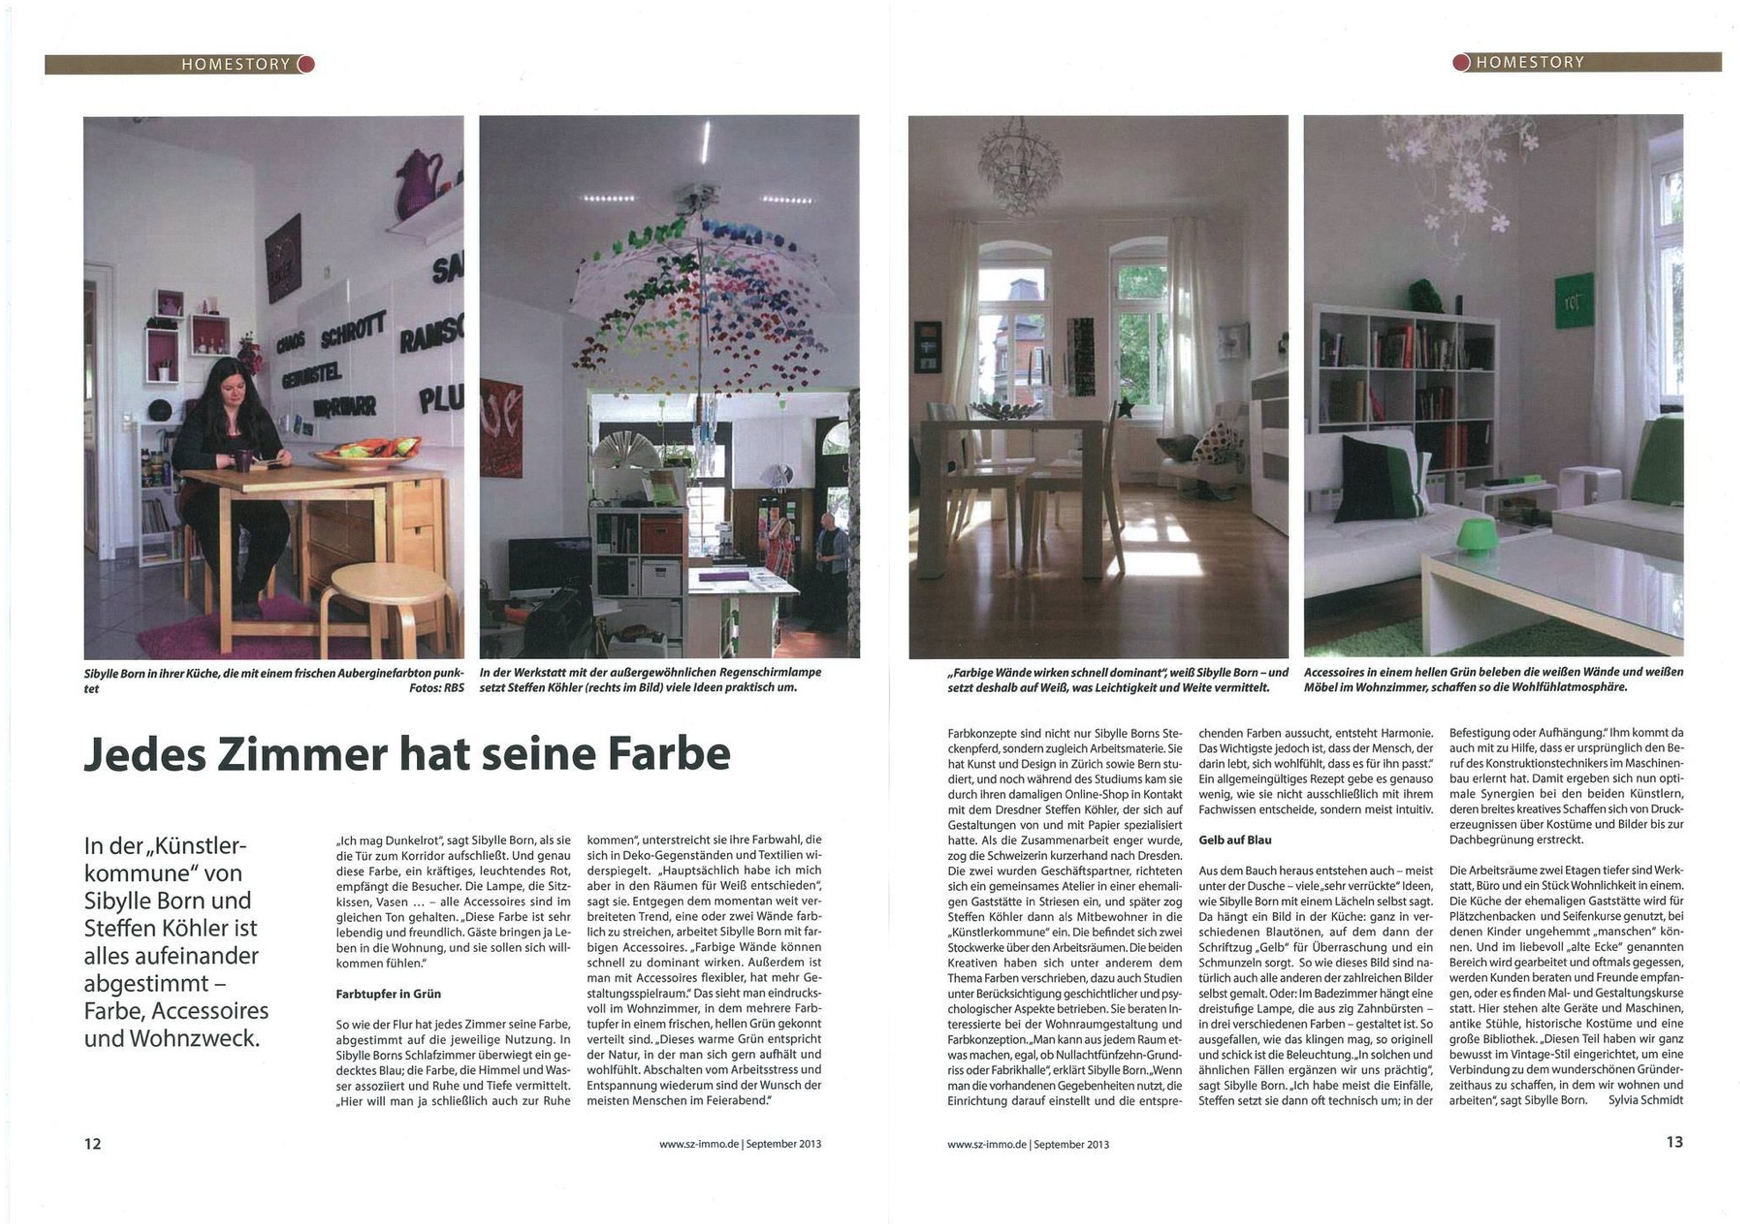 SZ Immo Magazin, September 2013